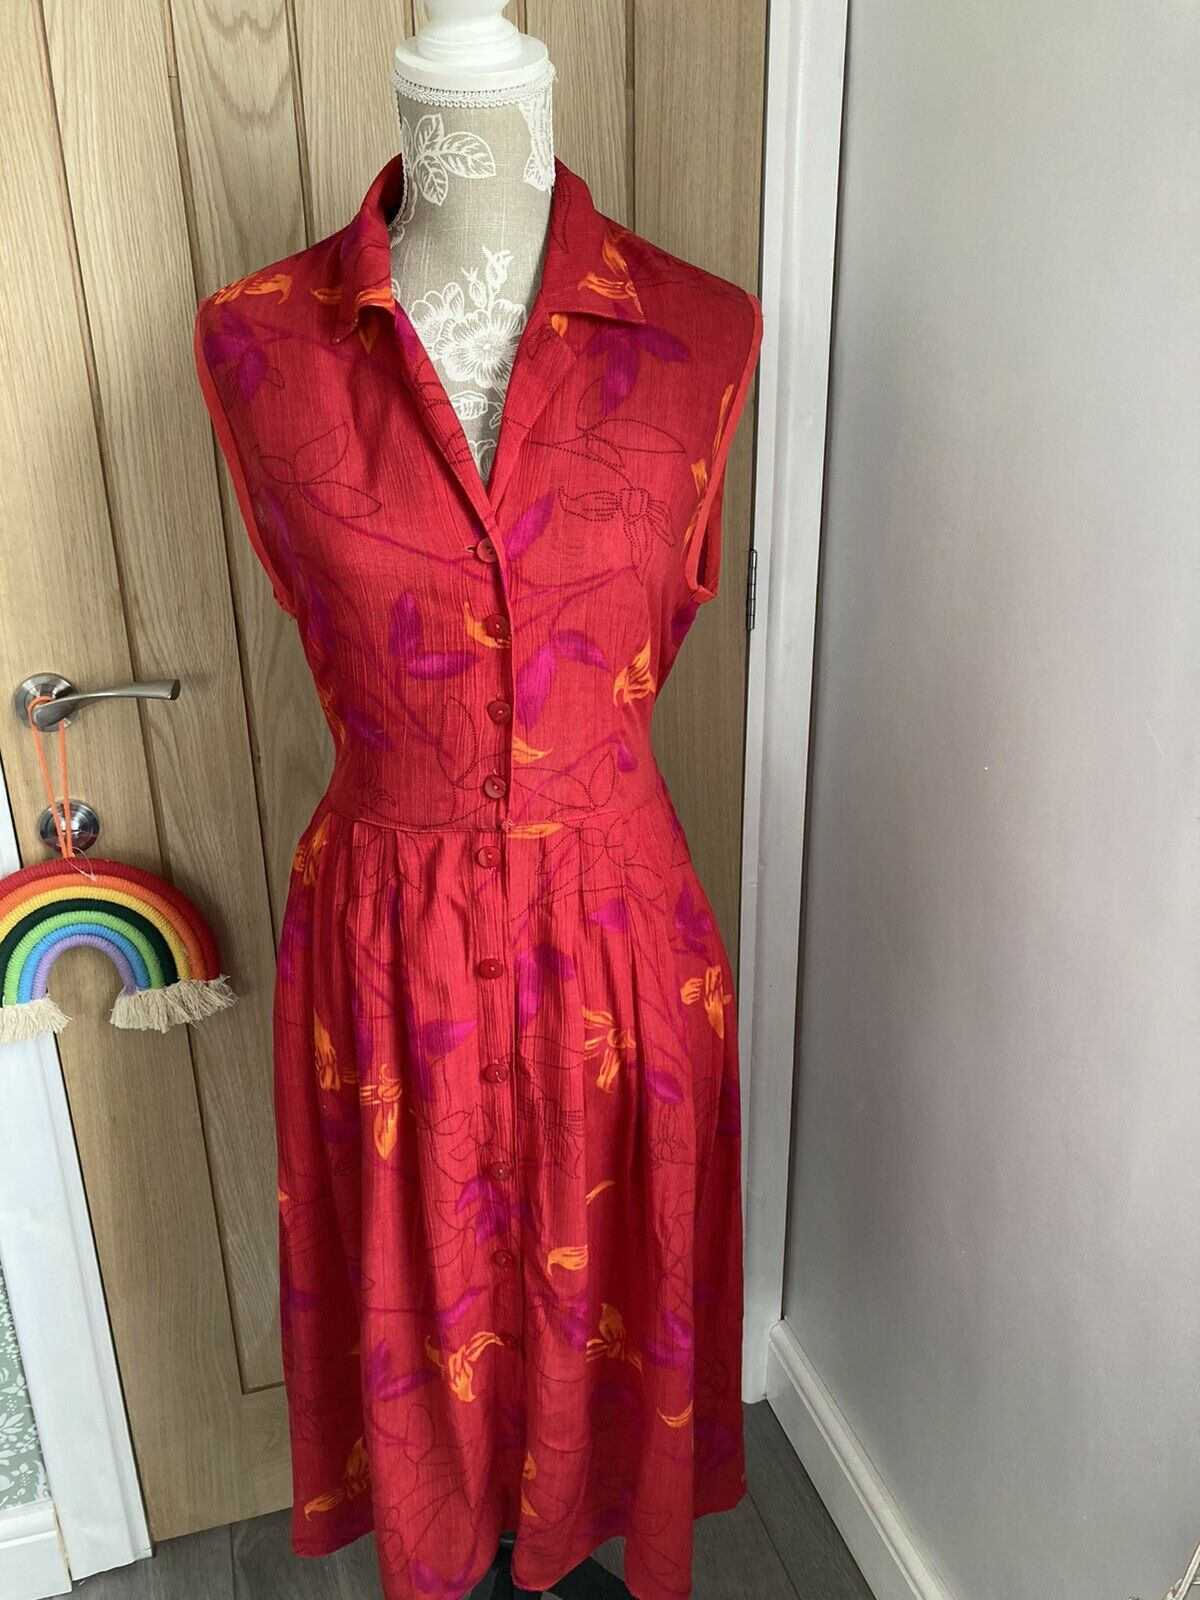 90s Vintage Retro Red Floral Button Down Day Dress, So Pretty! 12-14